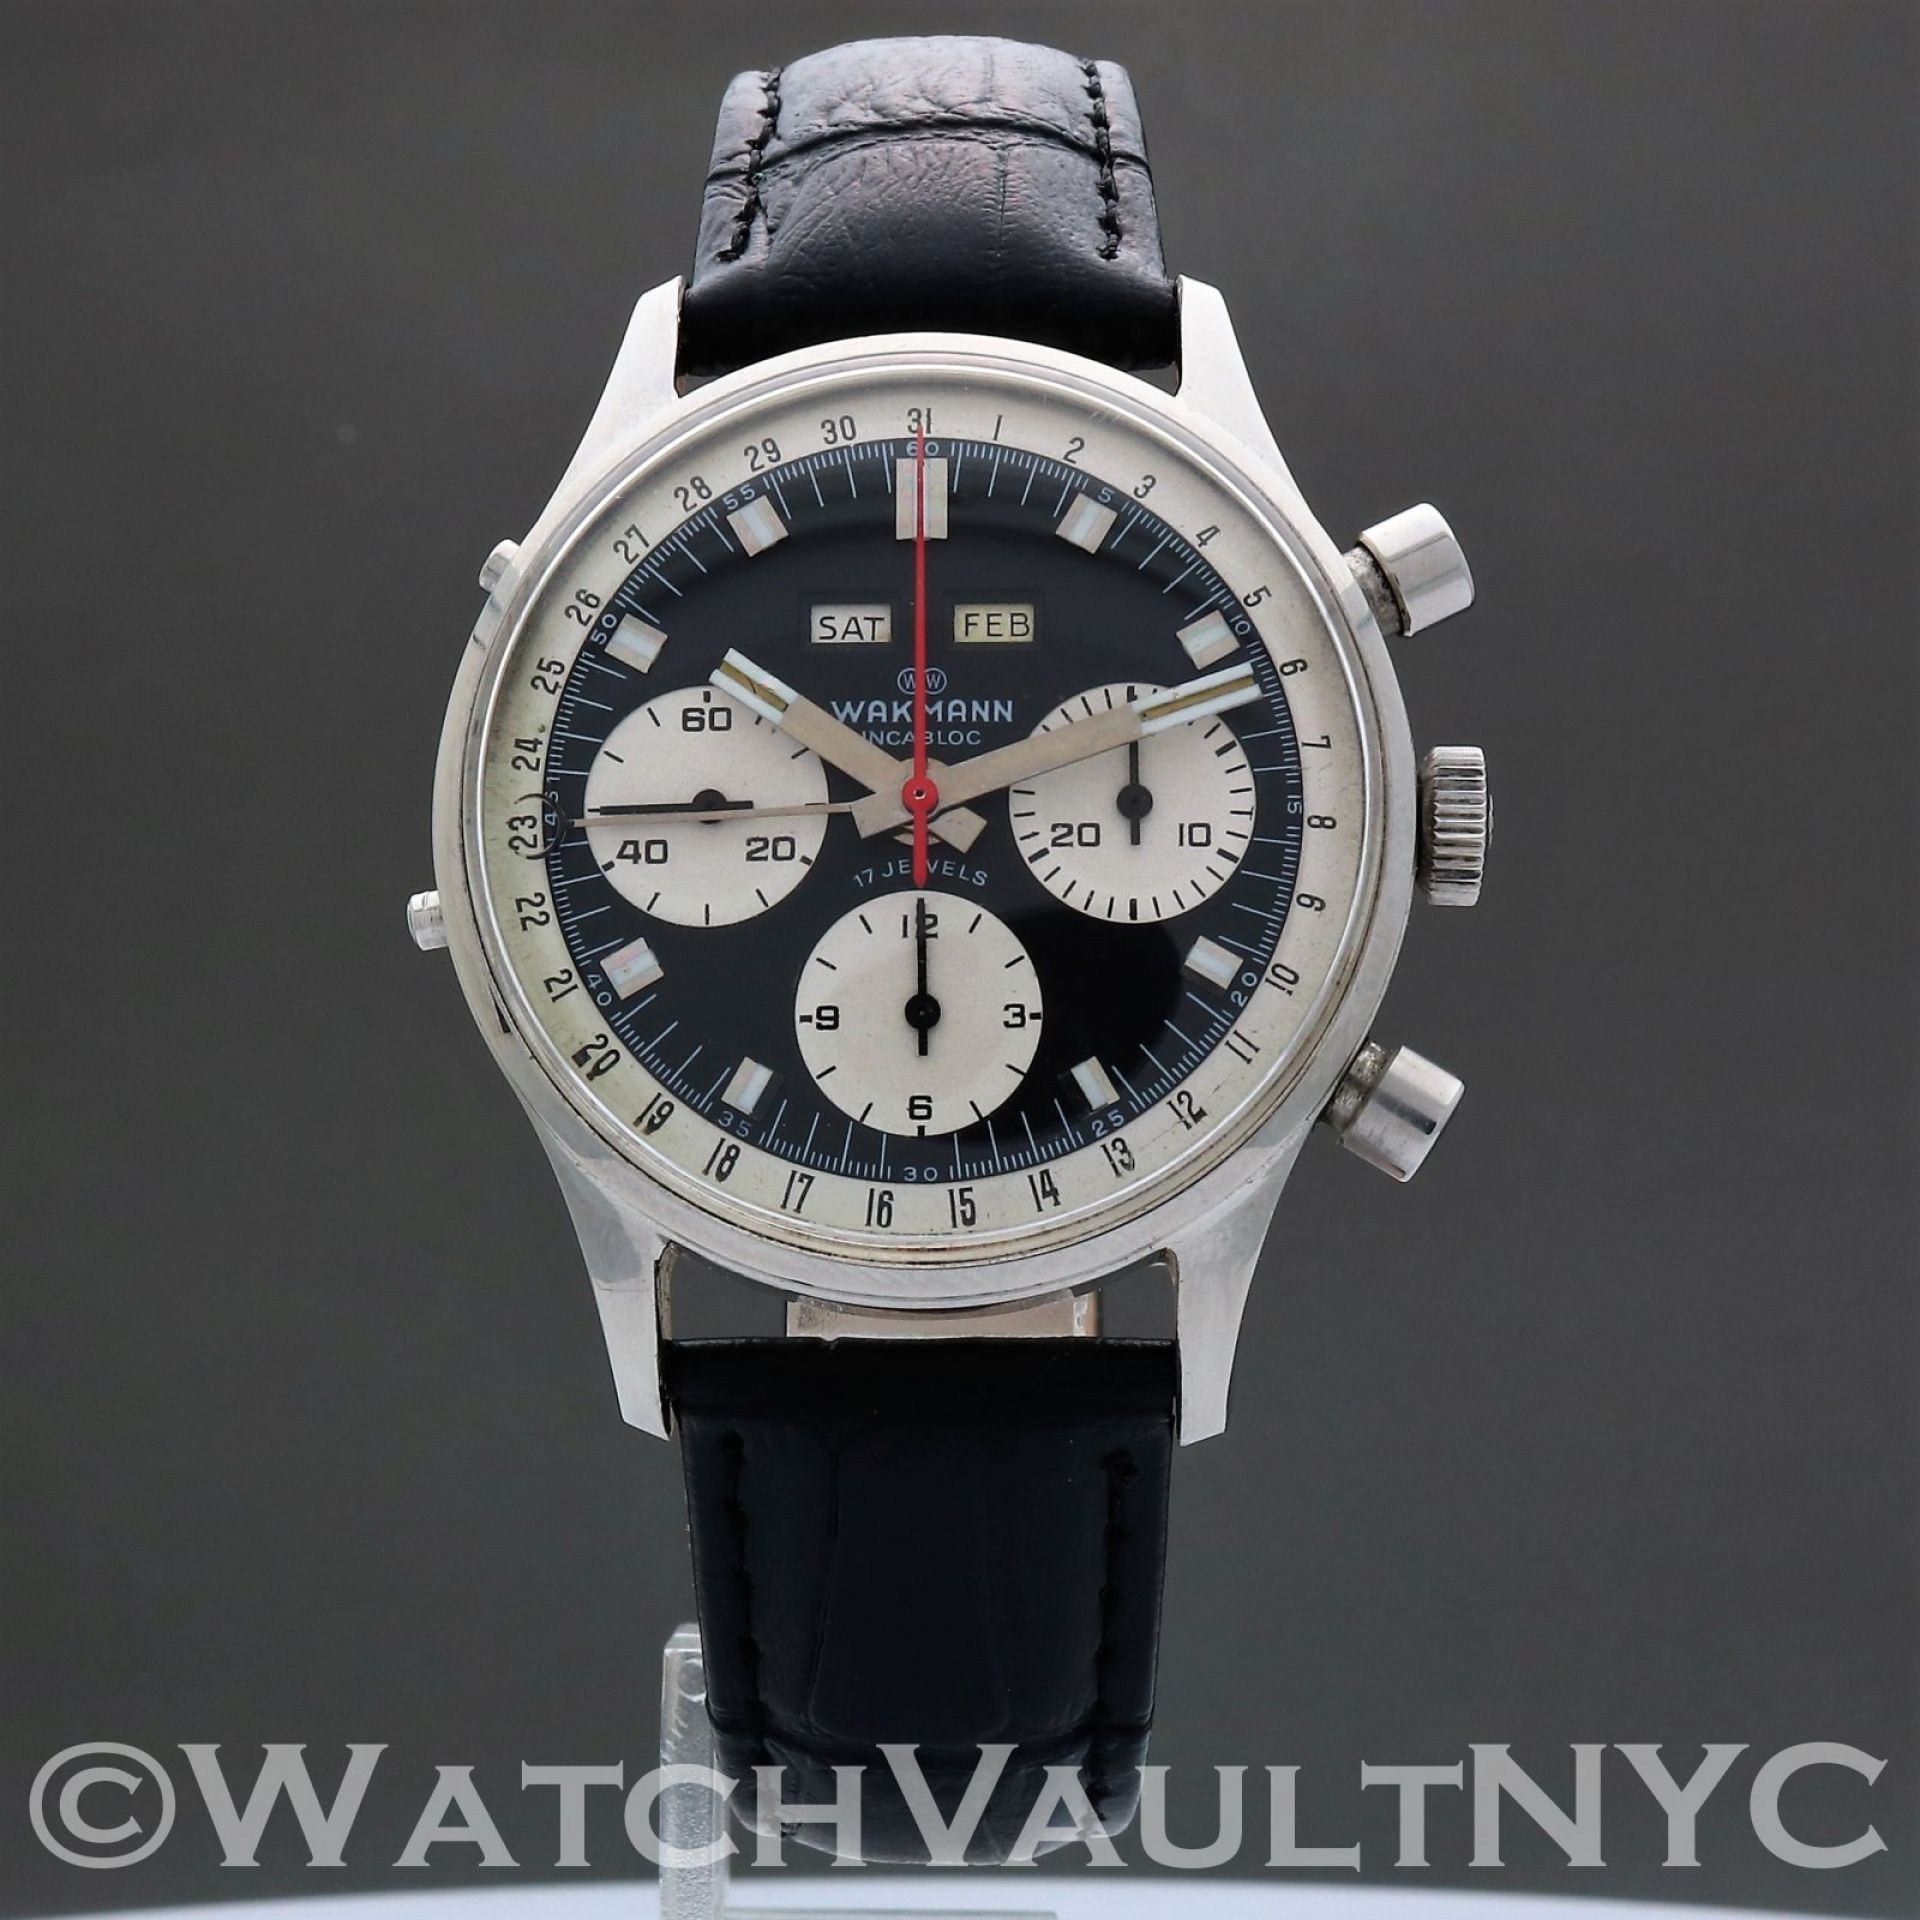 Wakmann Triple Date Chronograph 72.1309.70 1960s-1970s Vintage 37mm Manual RL510